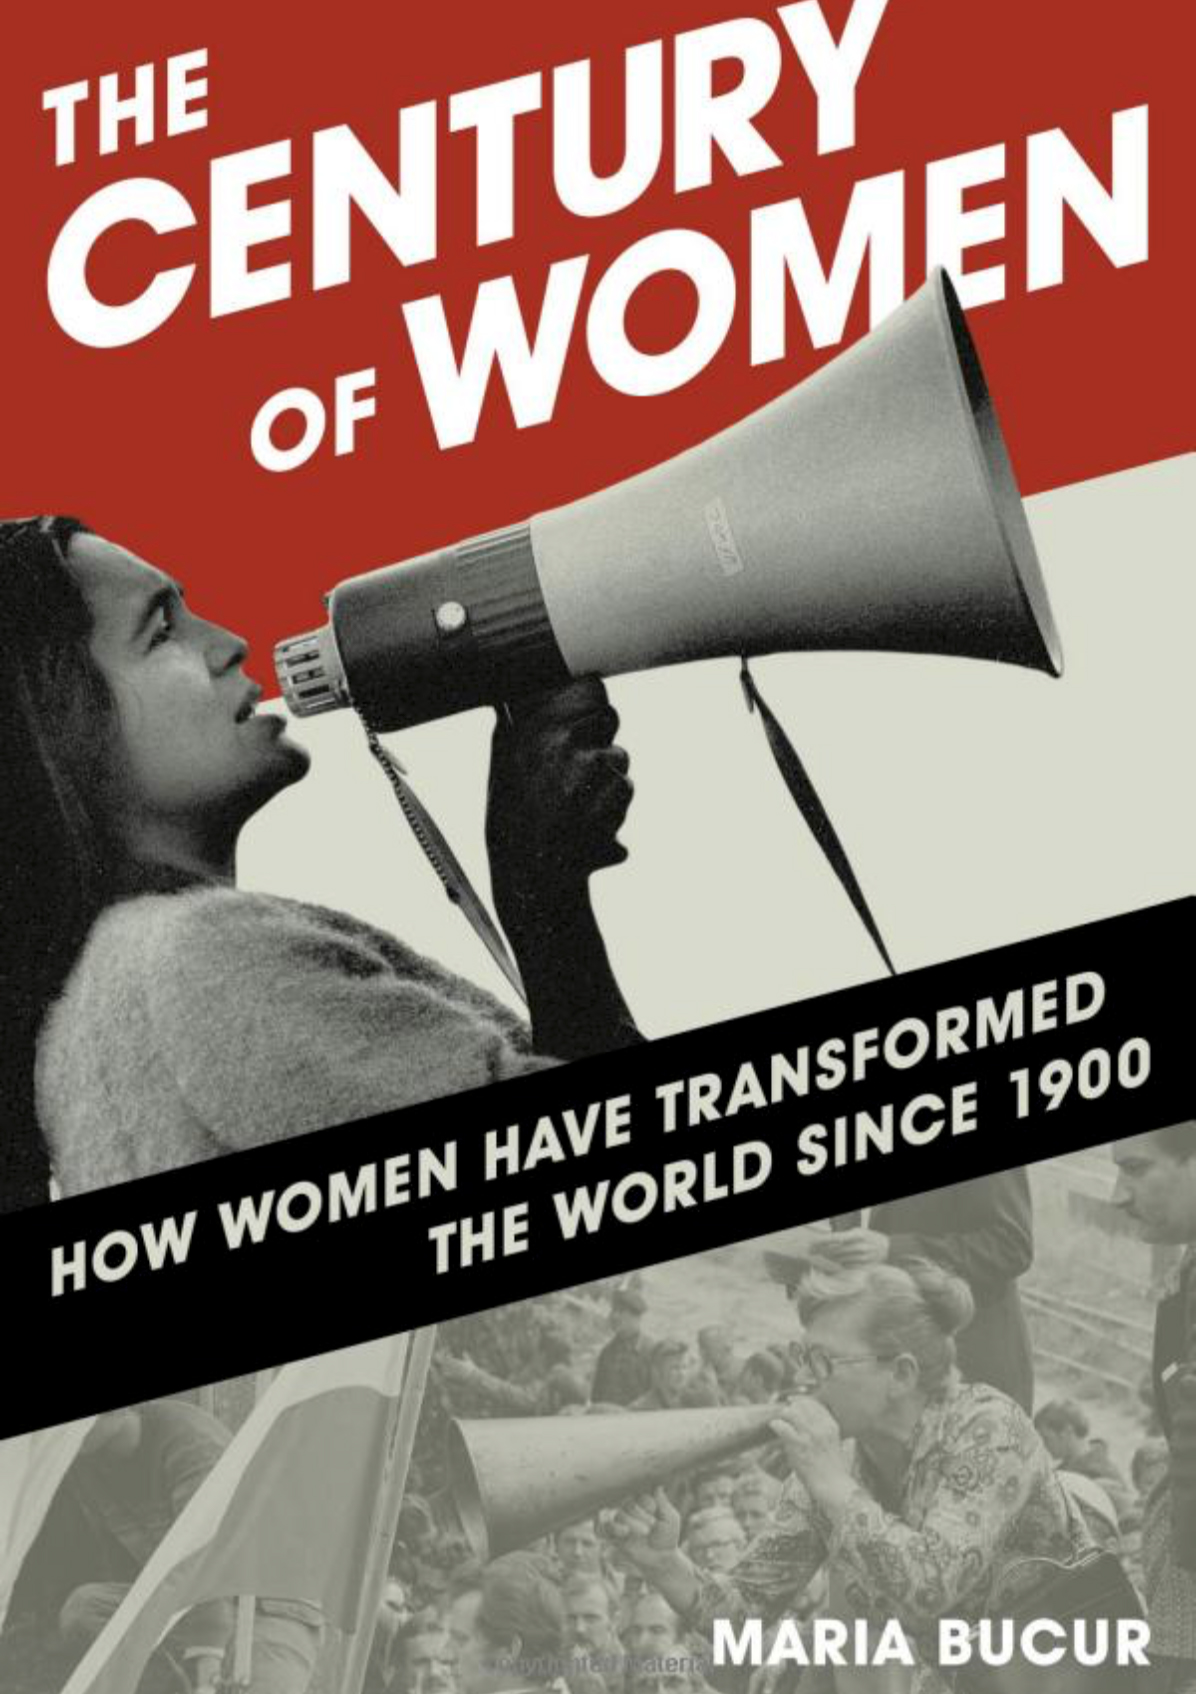 The Century of Women: How Women Have Transformed the World since 1900